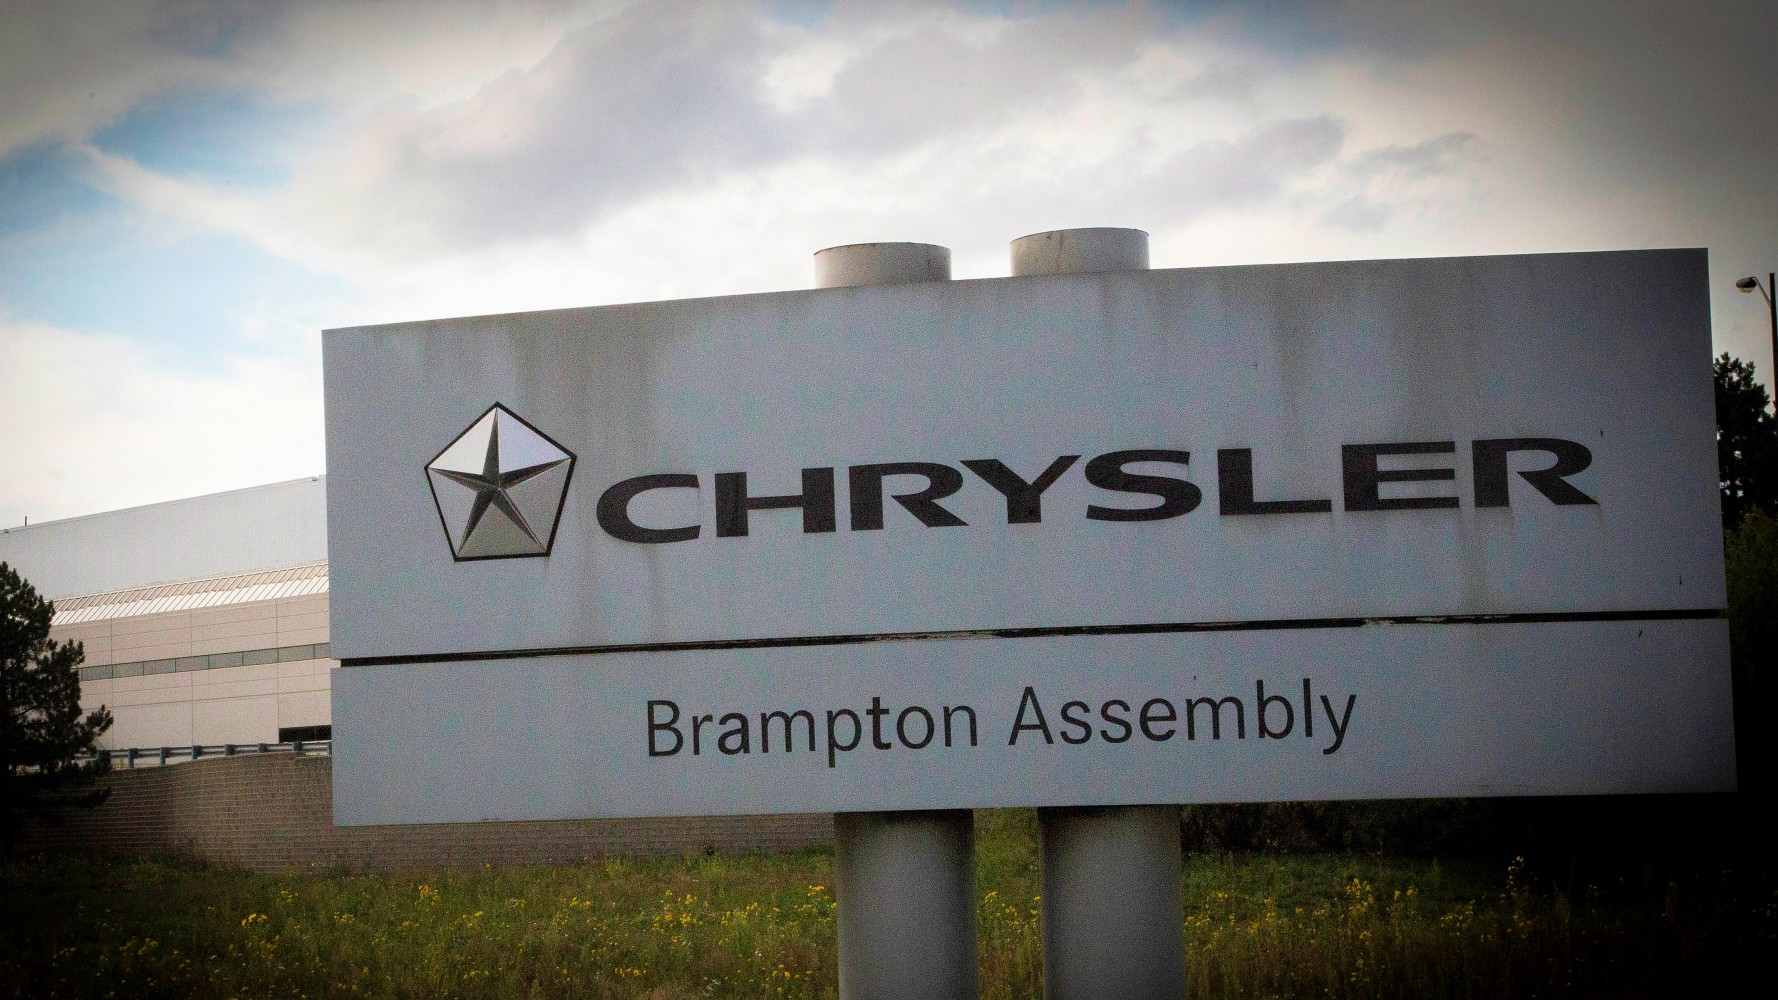 Auto analysts suggest US $4.5-billion investment in Michigan by Fiat-Chrysler could spell trouble for Brampton